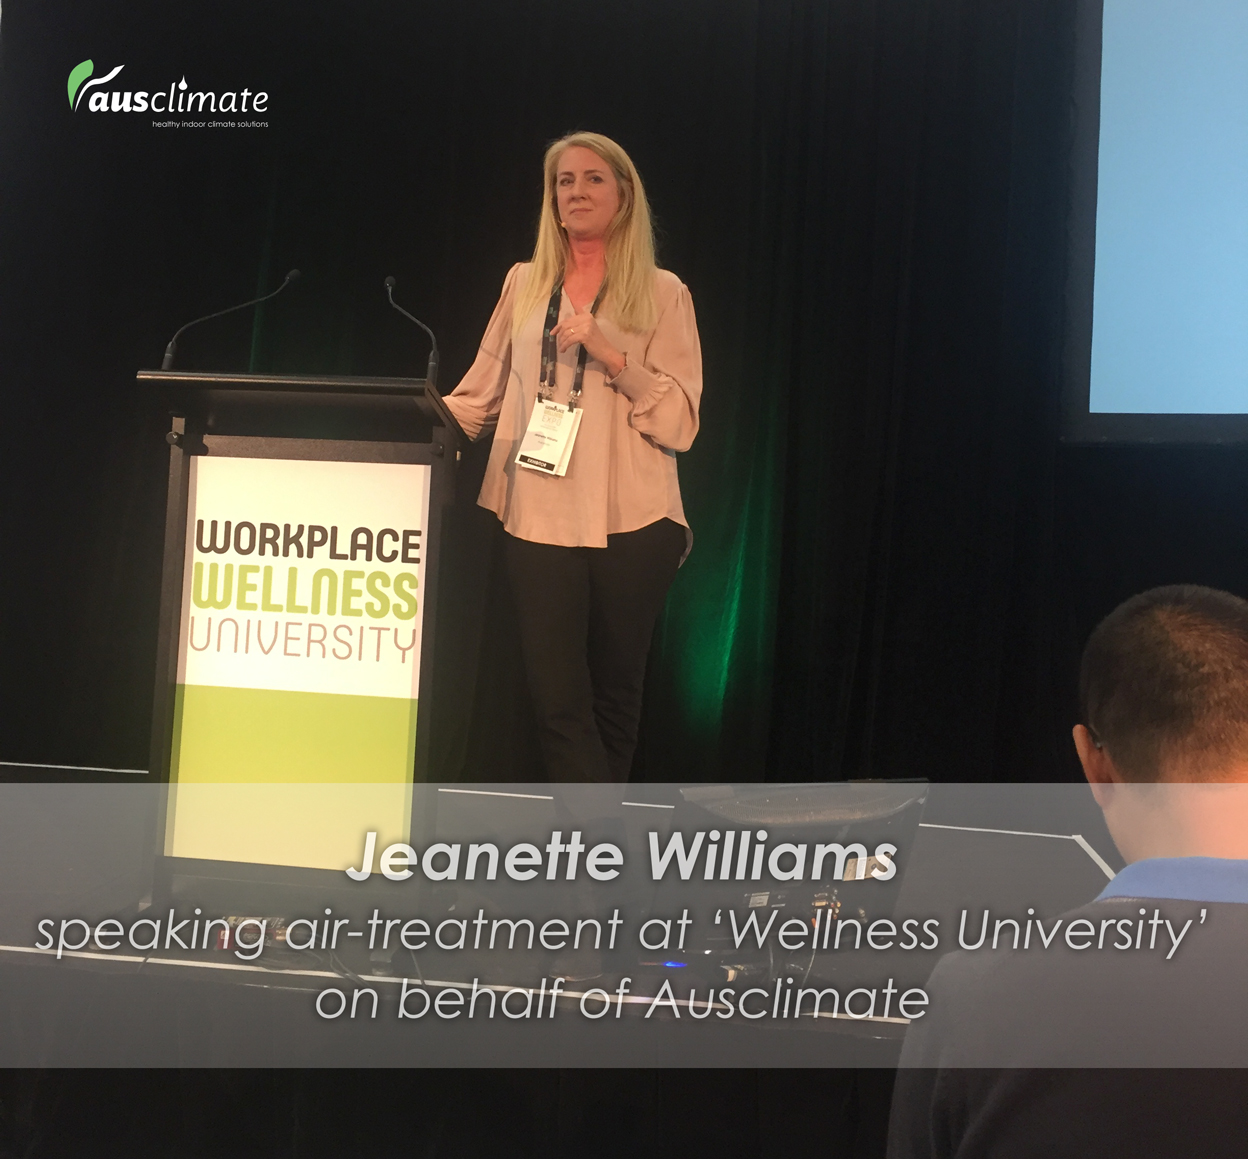 Jeanette-Williams-Ausclimate-Speaker